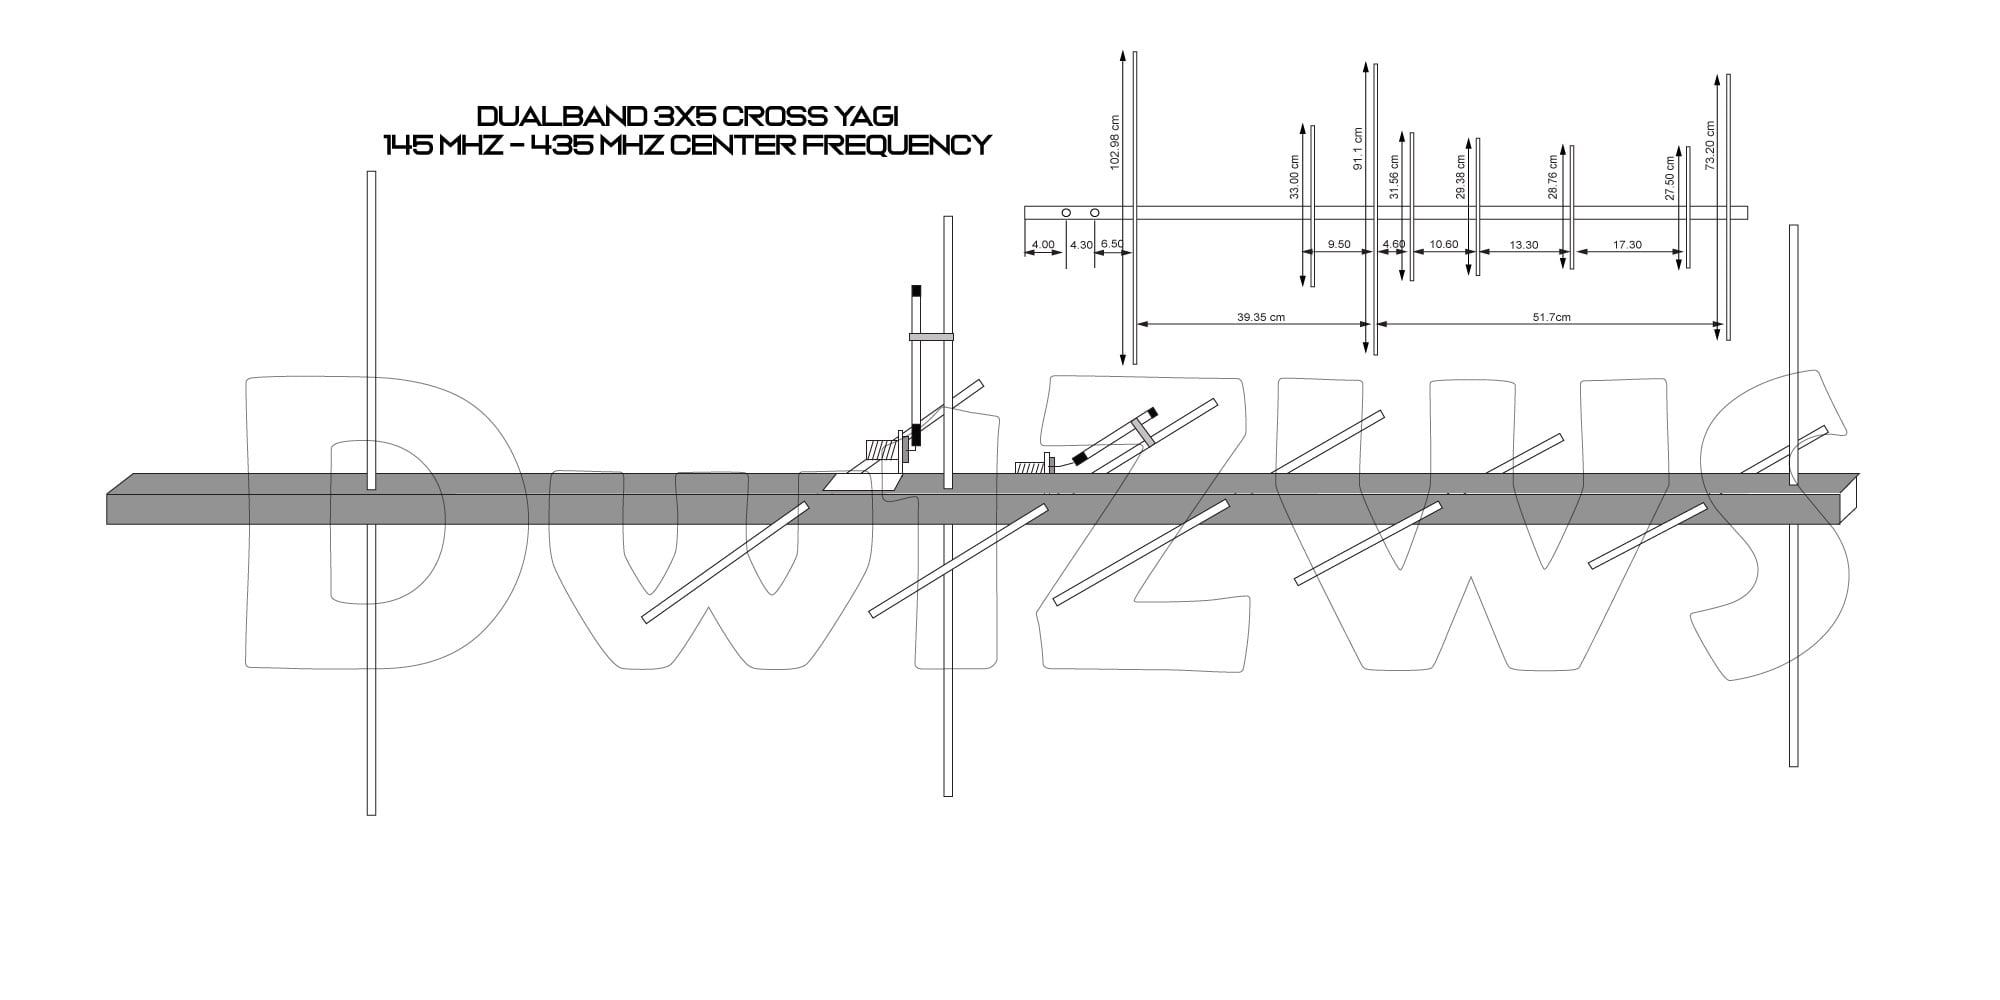 Dualband 3x5 Cross Yagi 145Mhz - 435Mhz mounting and